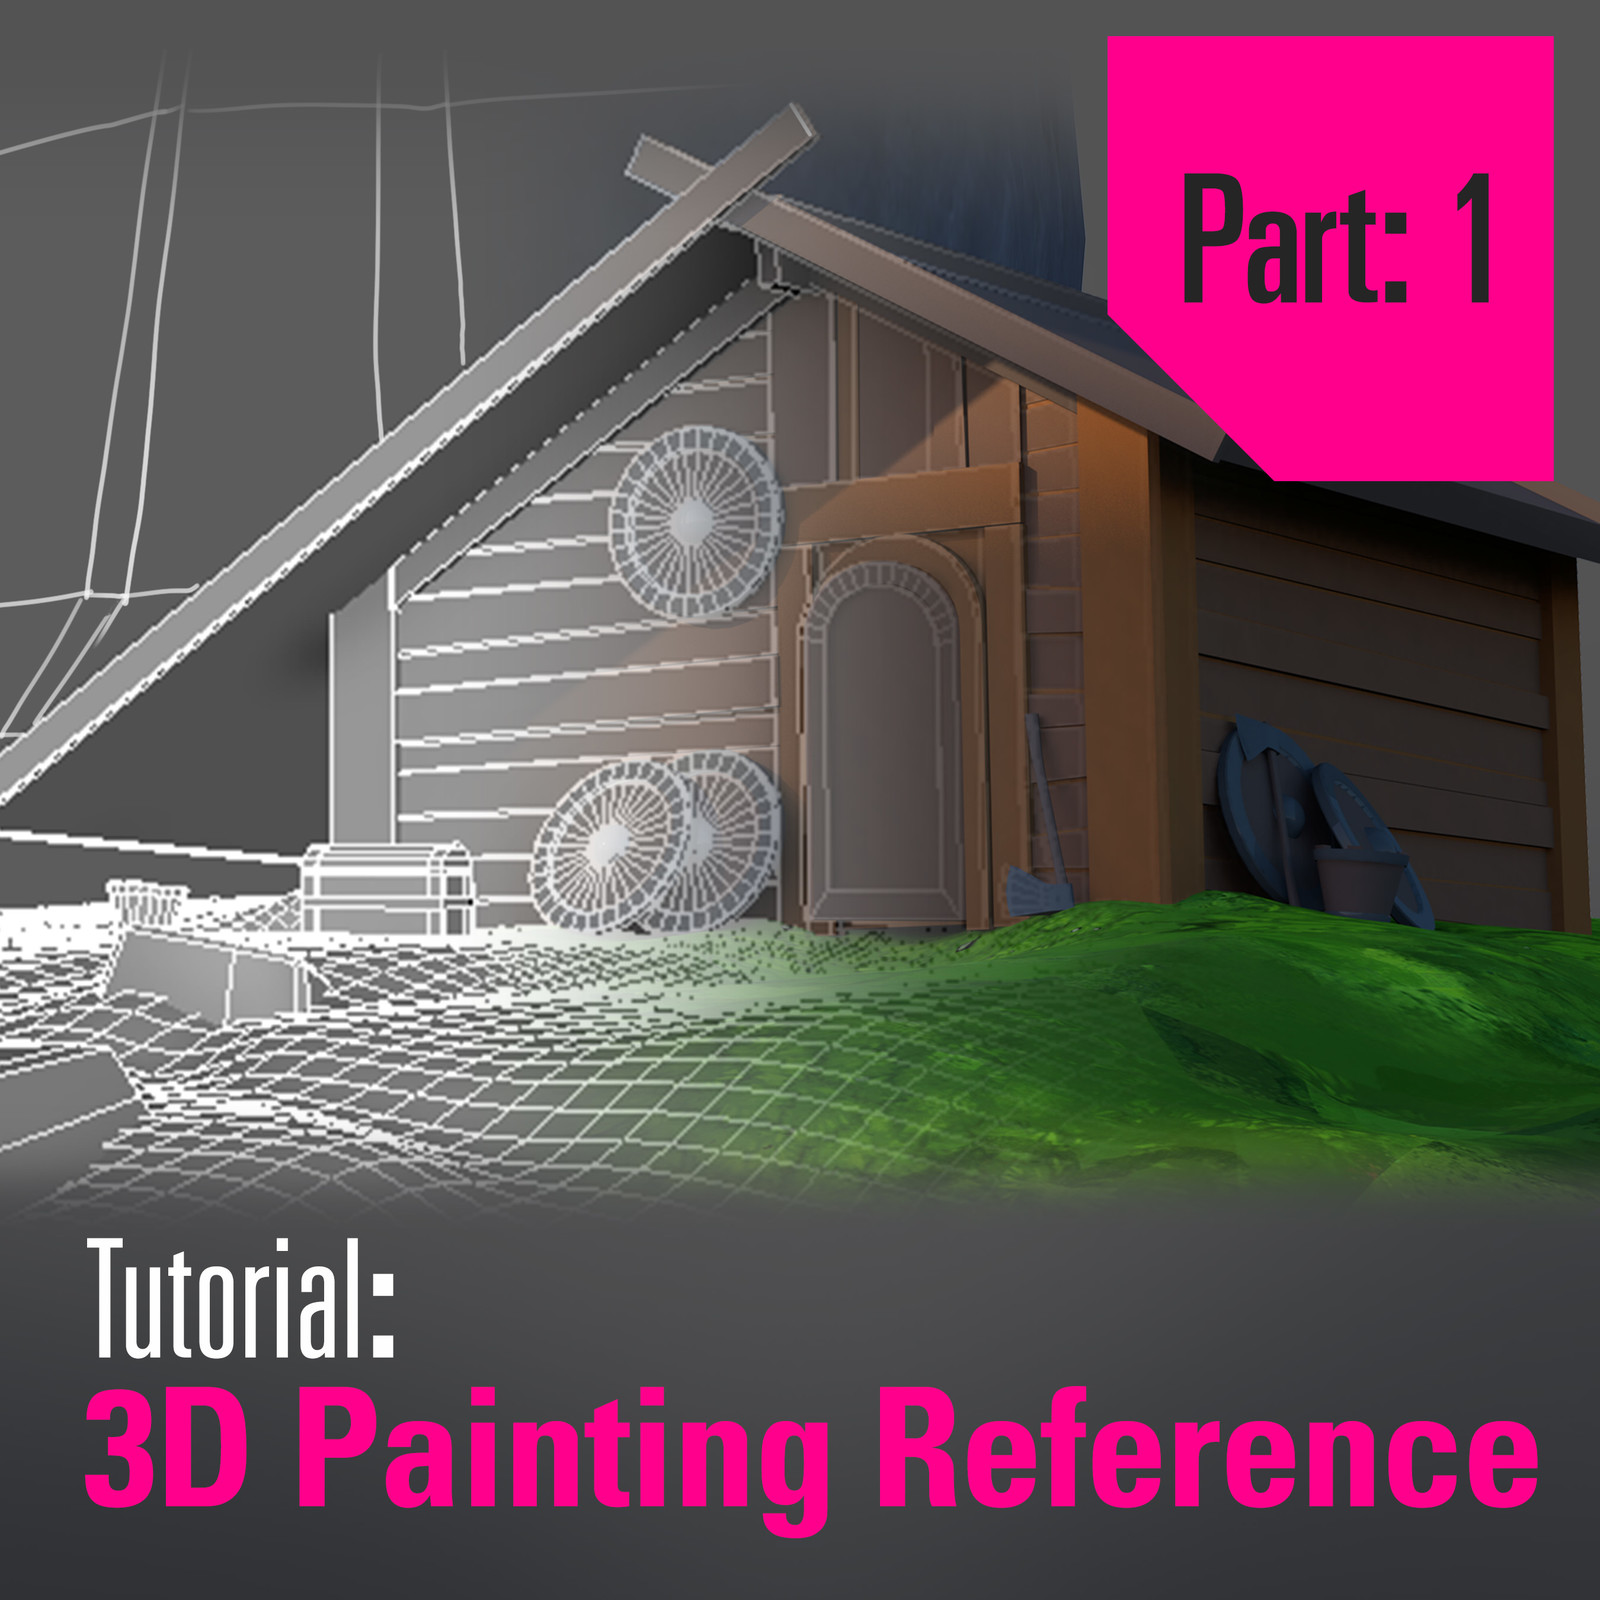 Tutorial: 3D Painting Reference Creation - Part 1